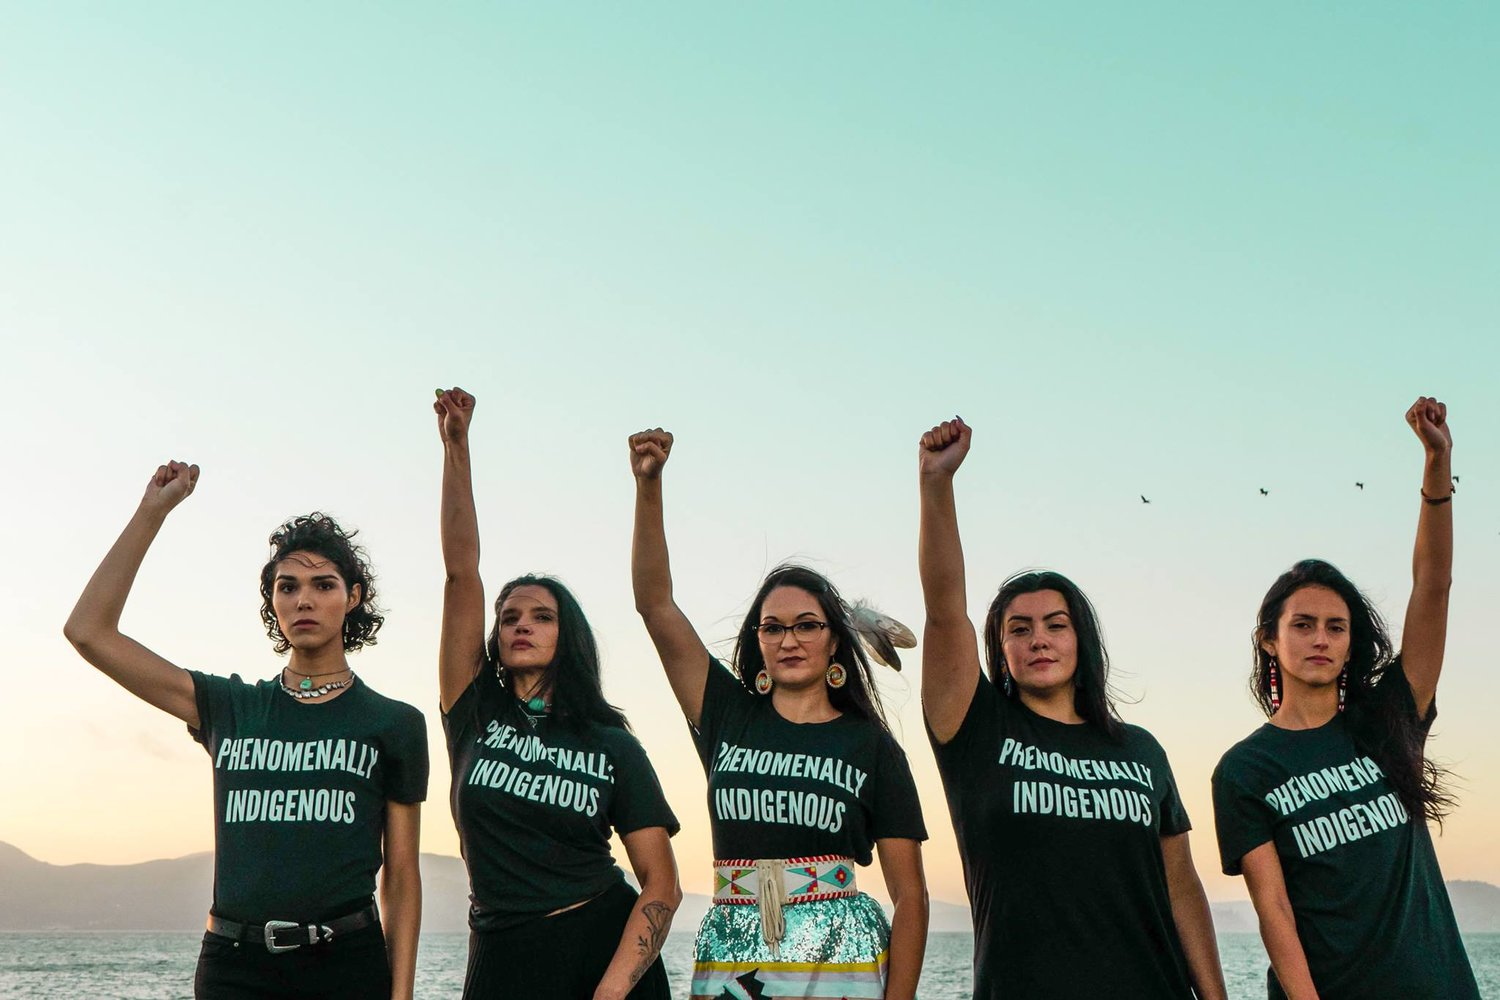 """""""Phenomenally Indigenous"""" T-shirts in support of Equal Pay for Native Women. Credits to: Urban Native [179]"""